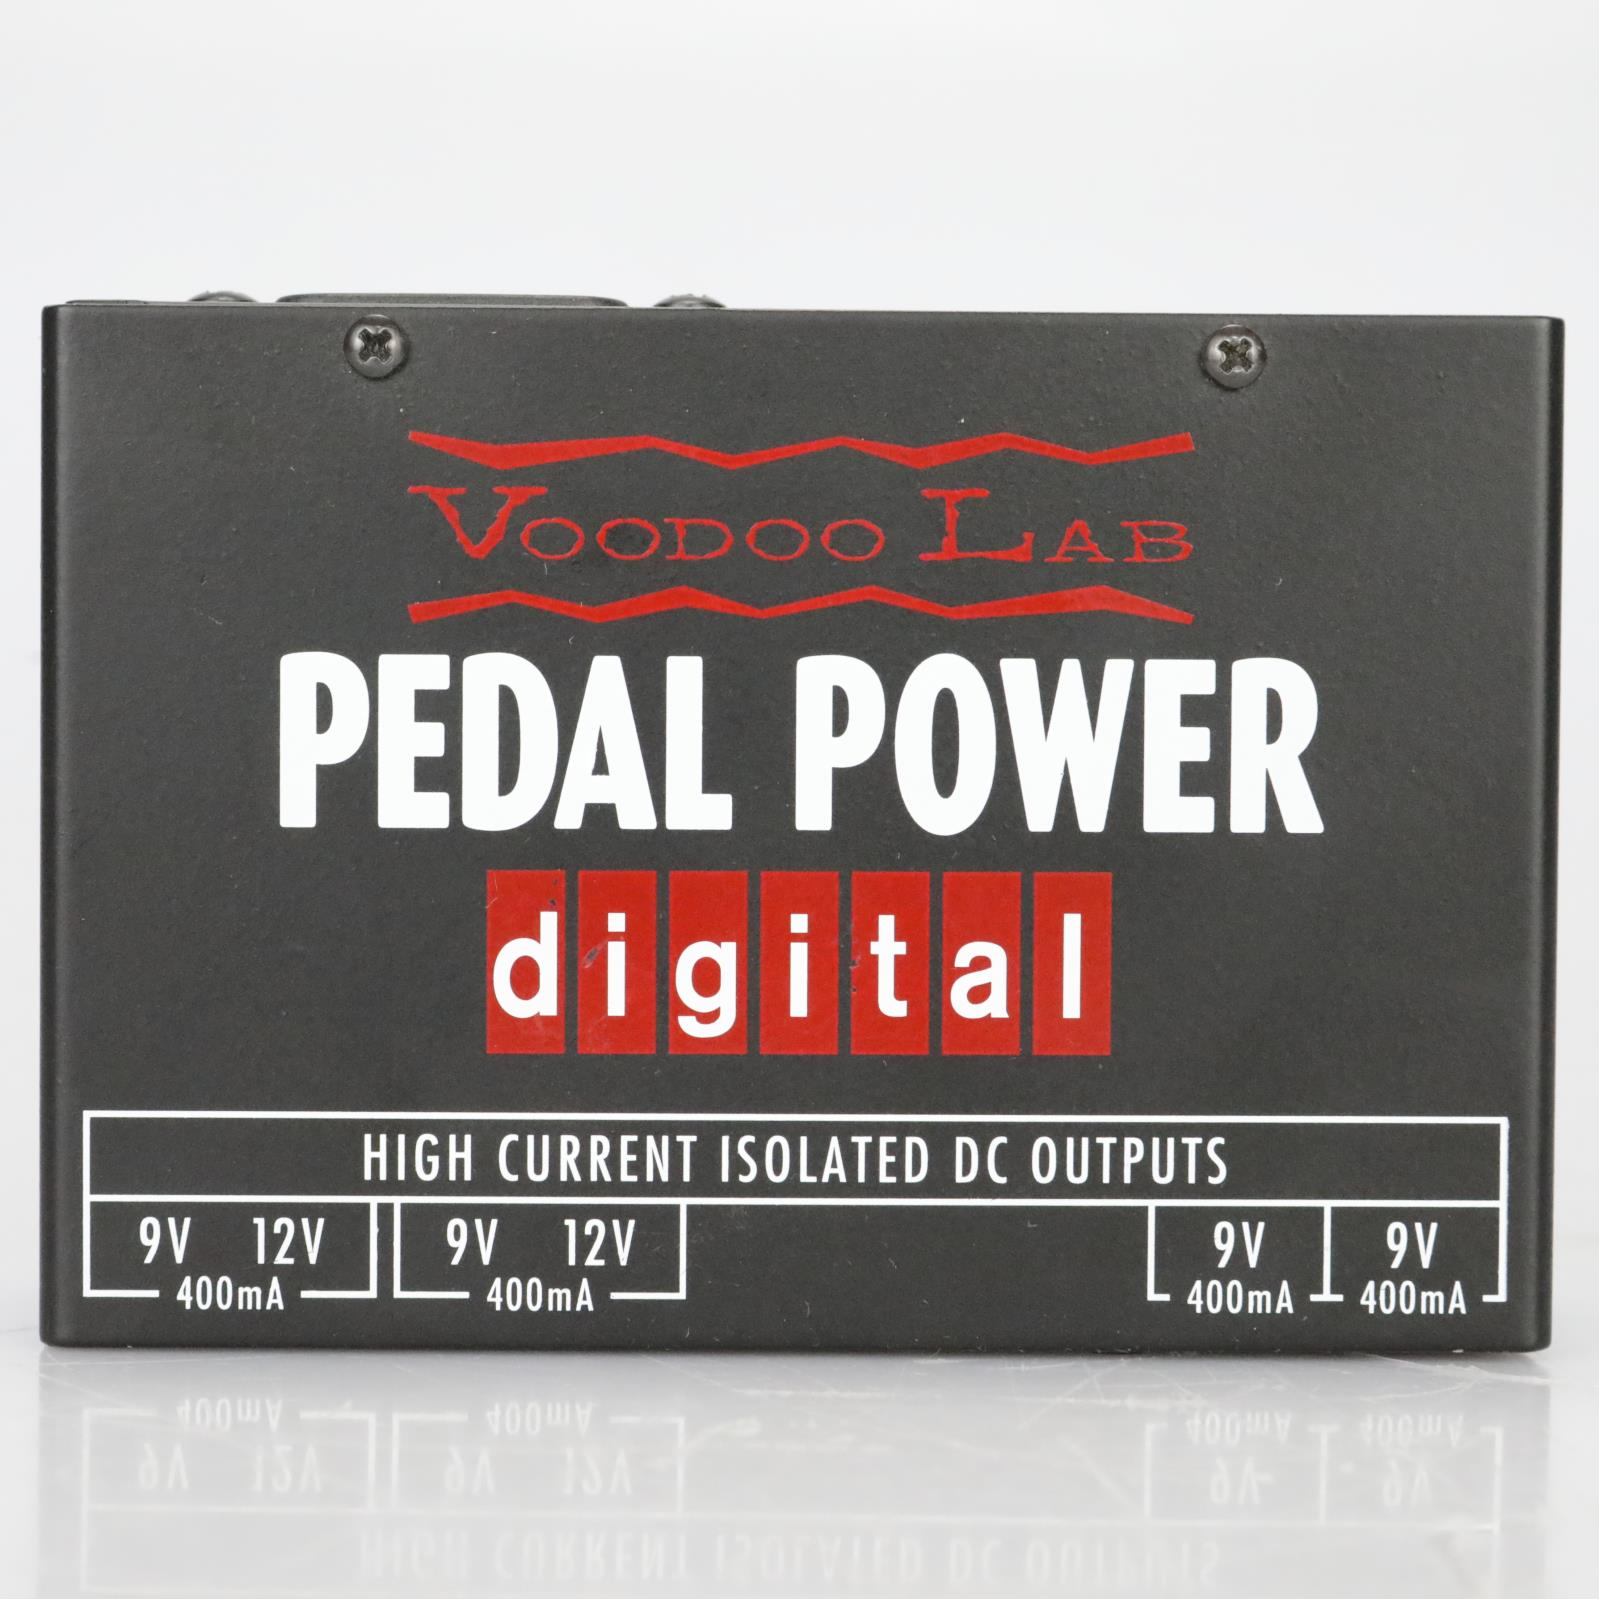 Voodoo Lab Pedal Power Digital High Current Isolated DC Power Supply #39358